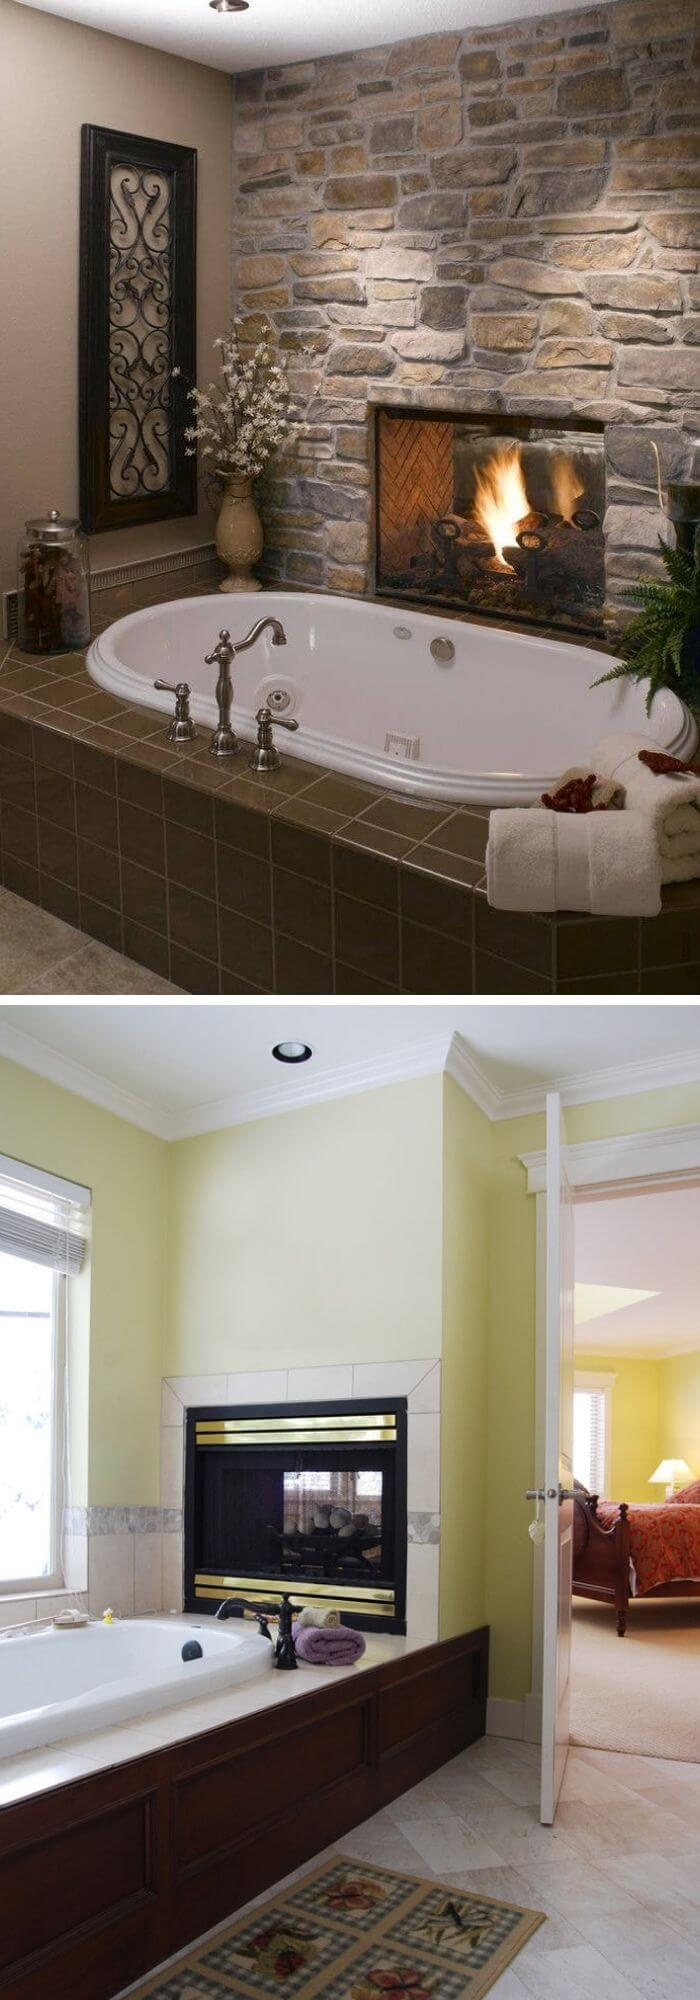 Install twin sided fireplace in between your room and washroom